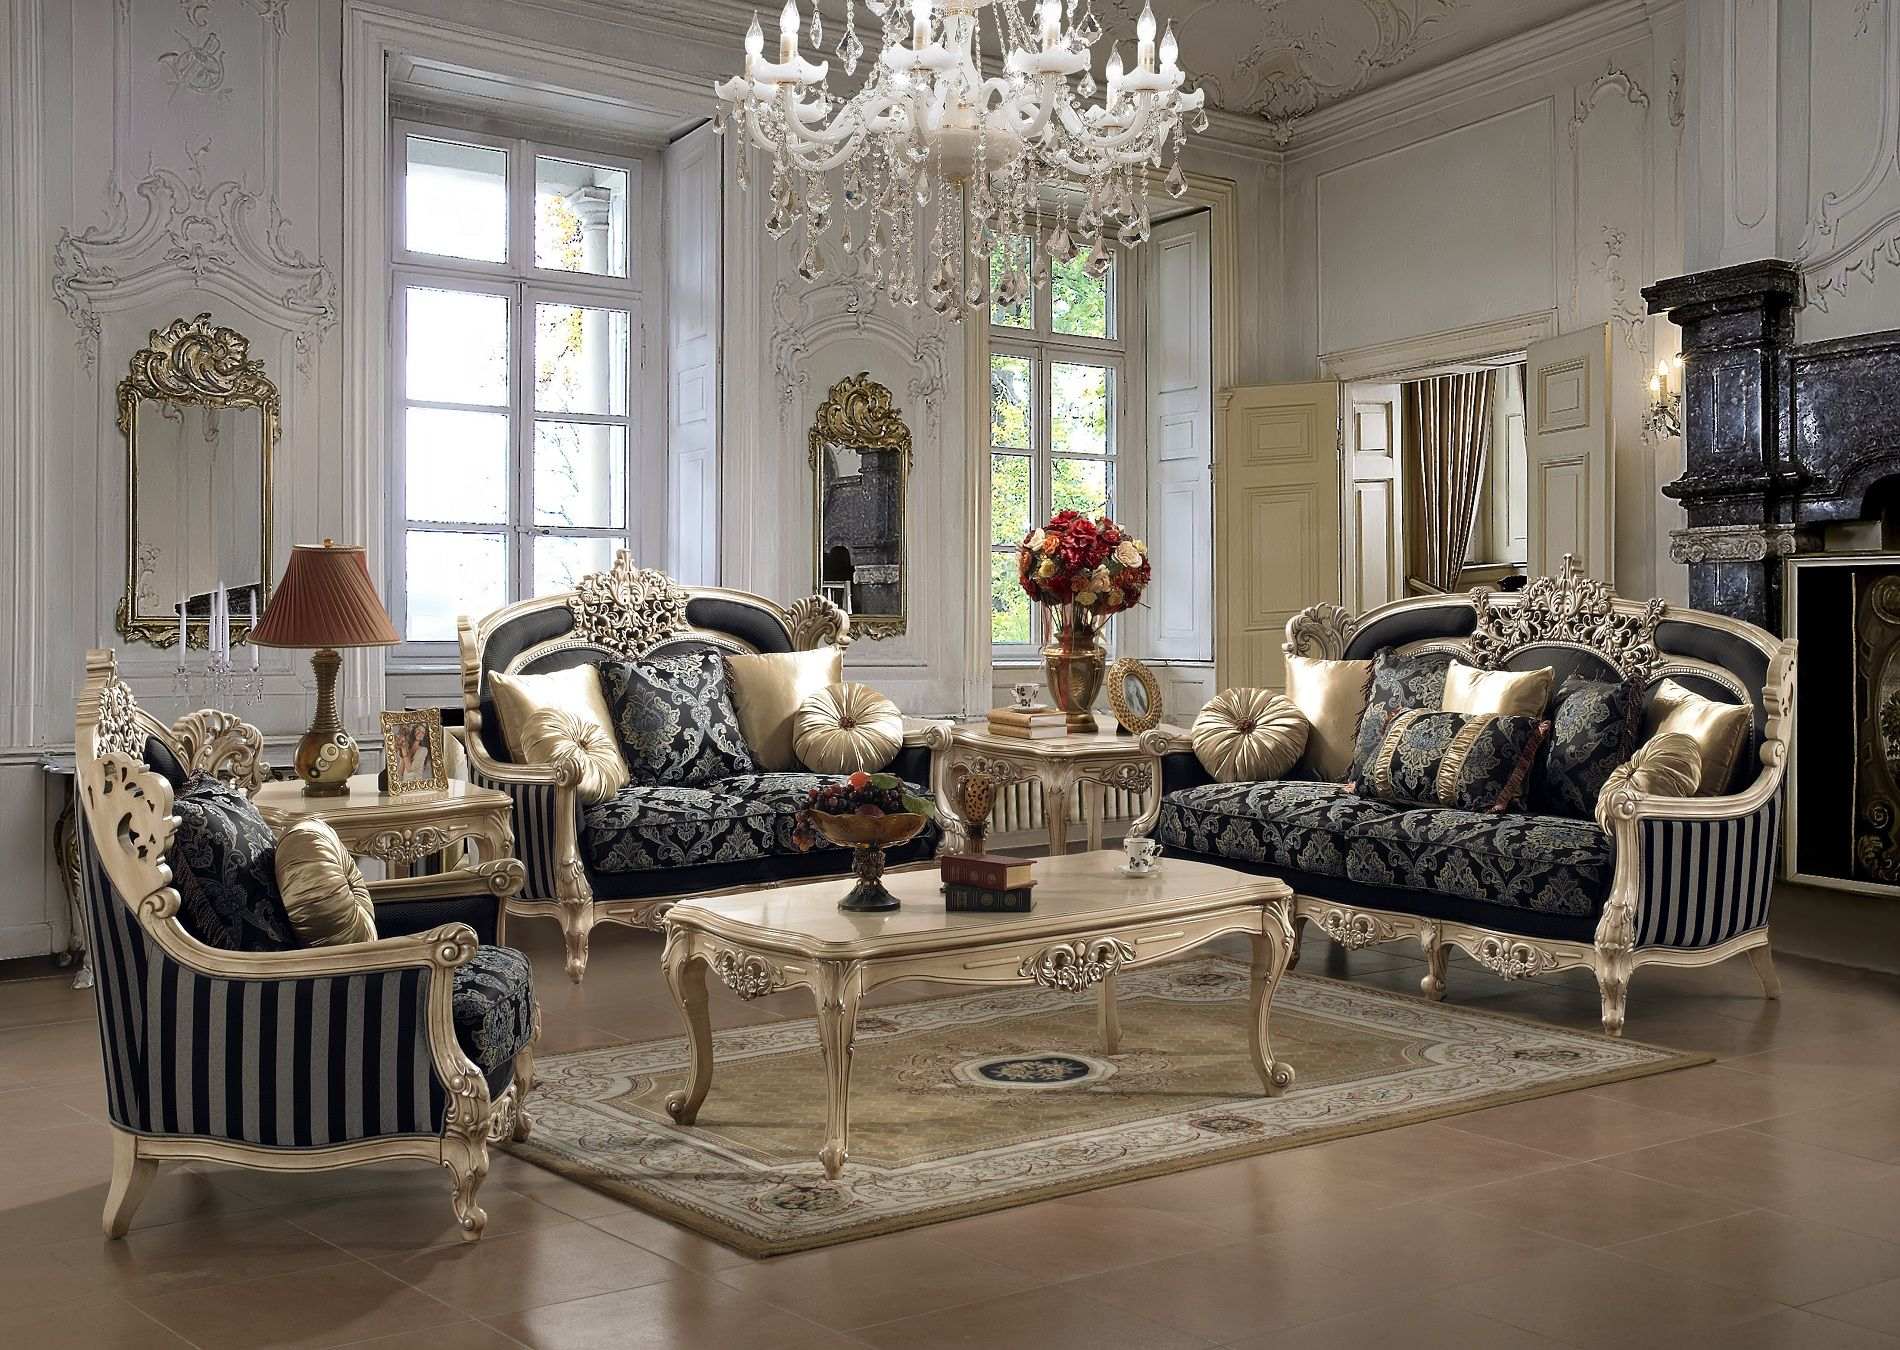 Merveilleux Royal Style 3 Piece Living Room Sofa Set With Accent Pillows